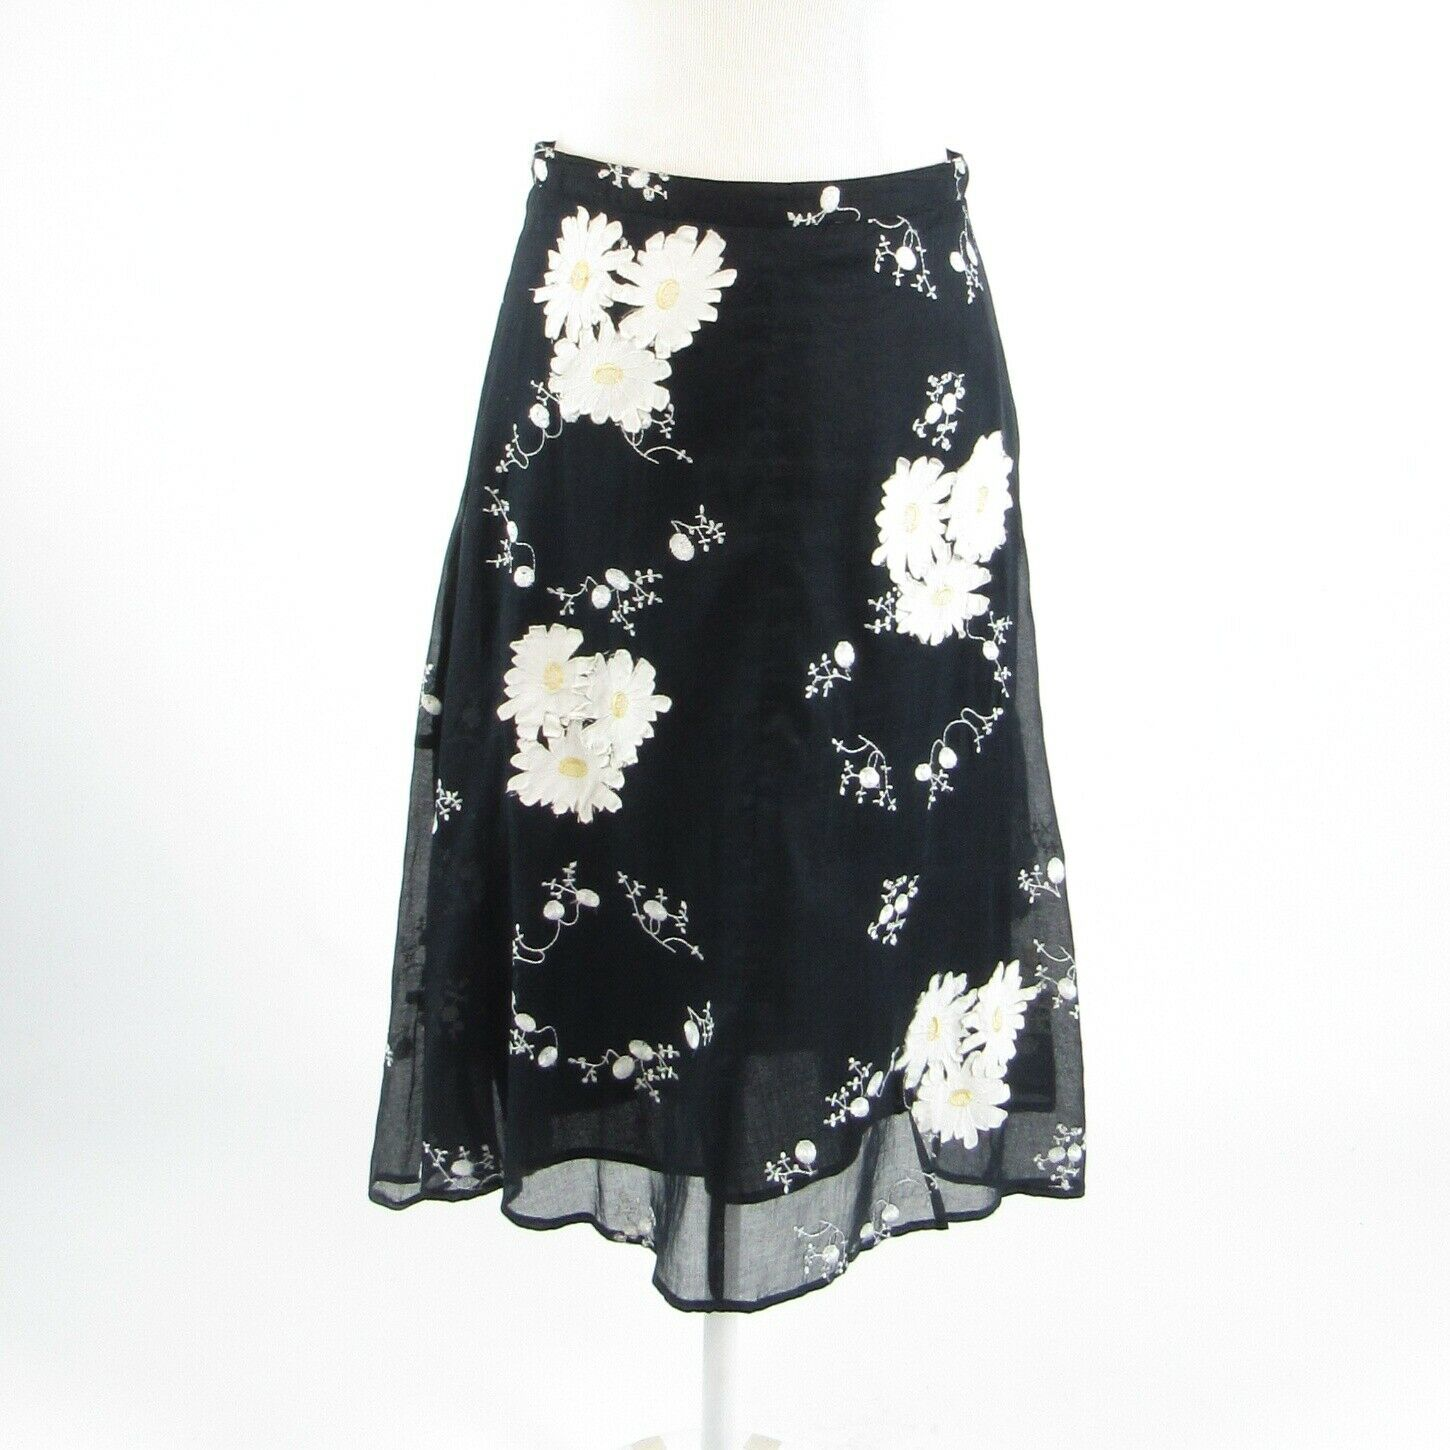 Black white floral print cotton blend PERSAMAN NEW YORK A-line skirt 4